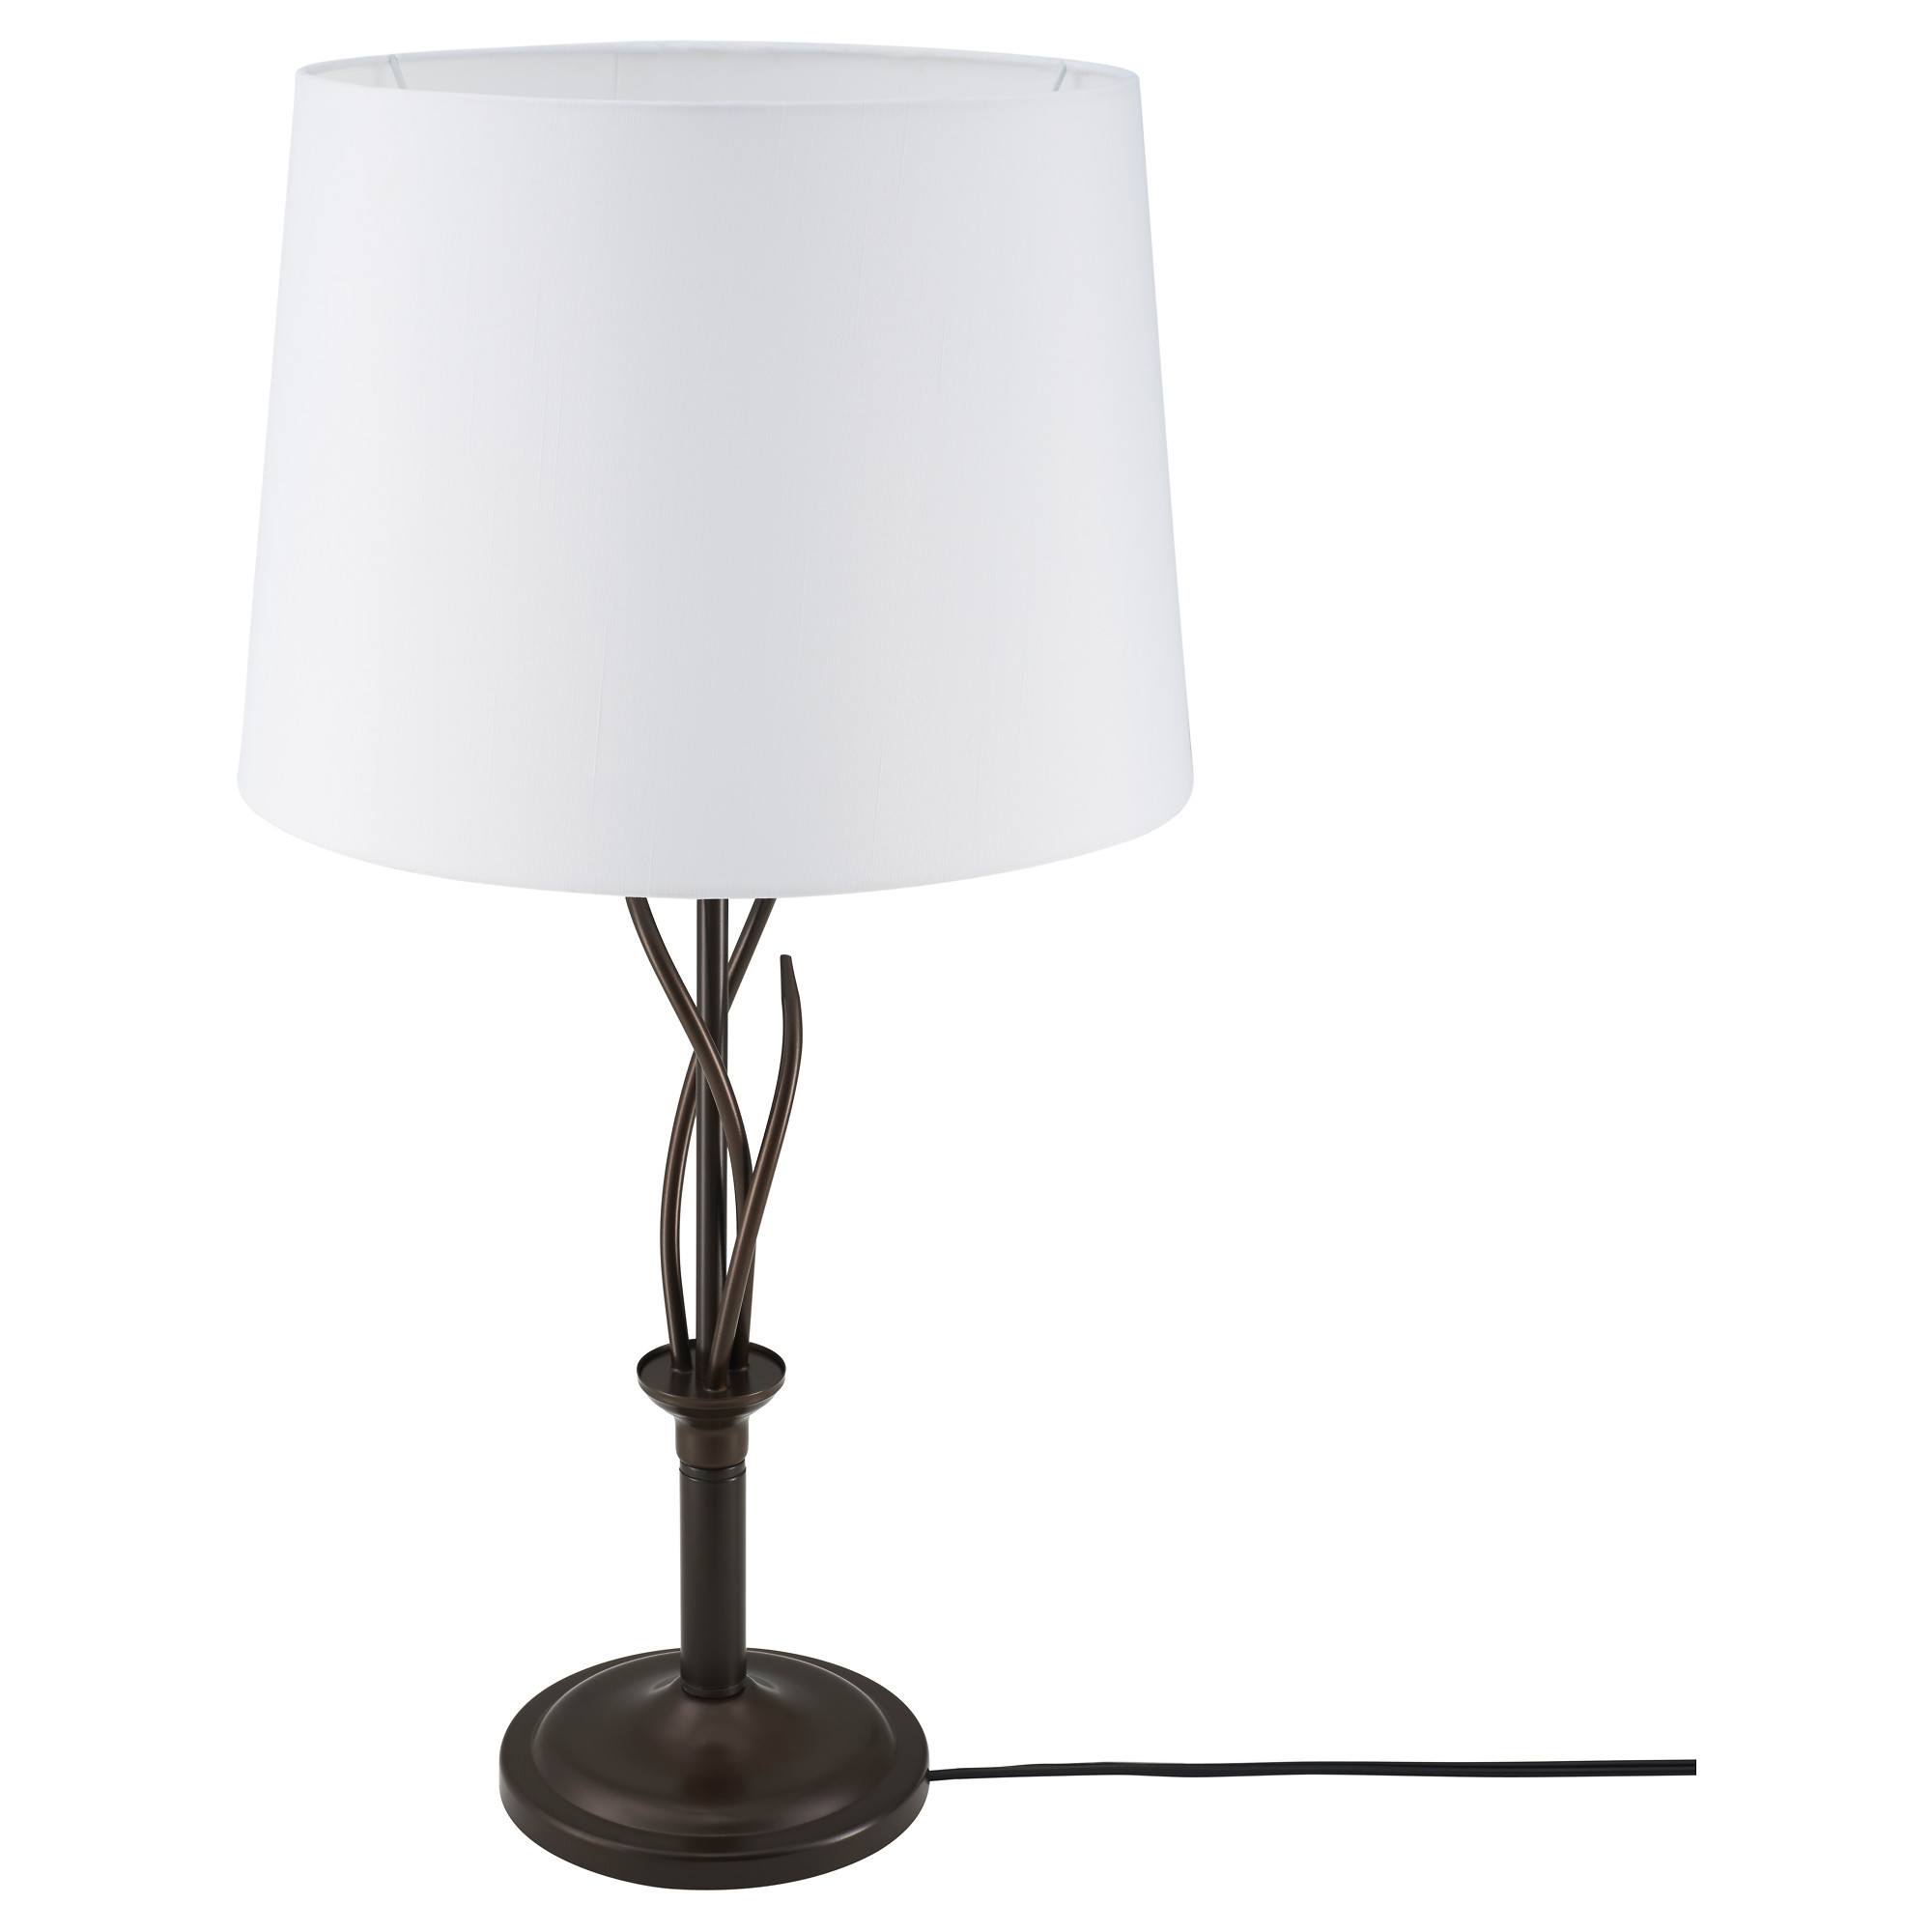 Lighting Stores Perth Wa 3 Way Touch Lamps The Beauty And Upkeep Of Your Home Warisan